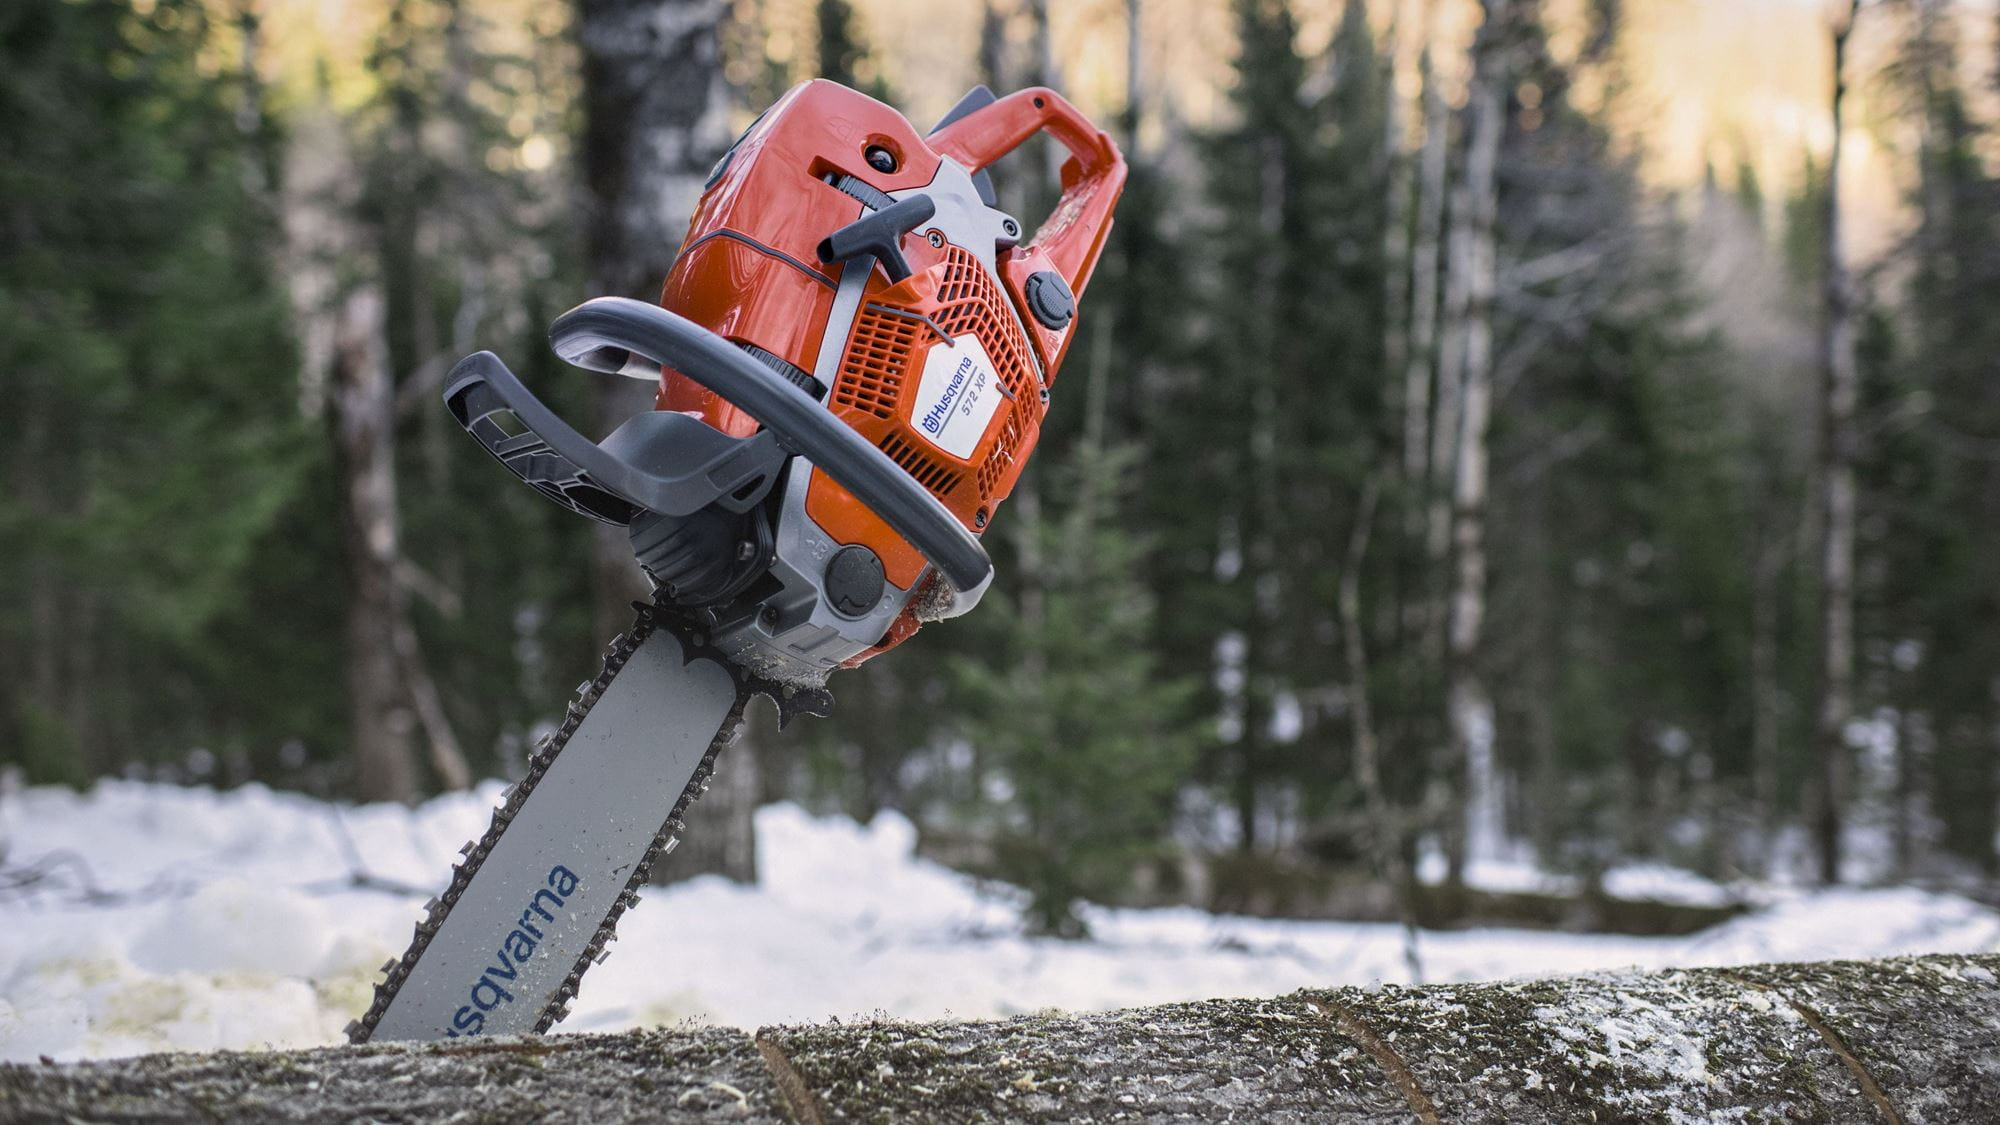 Husqvarna XP® chainsaws mean extra performance